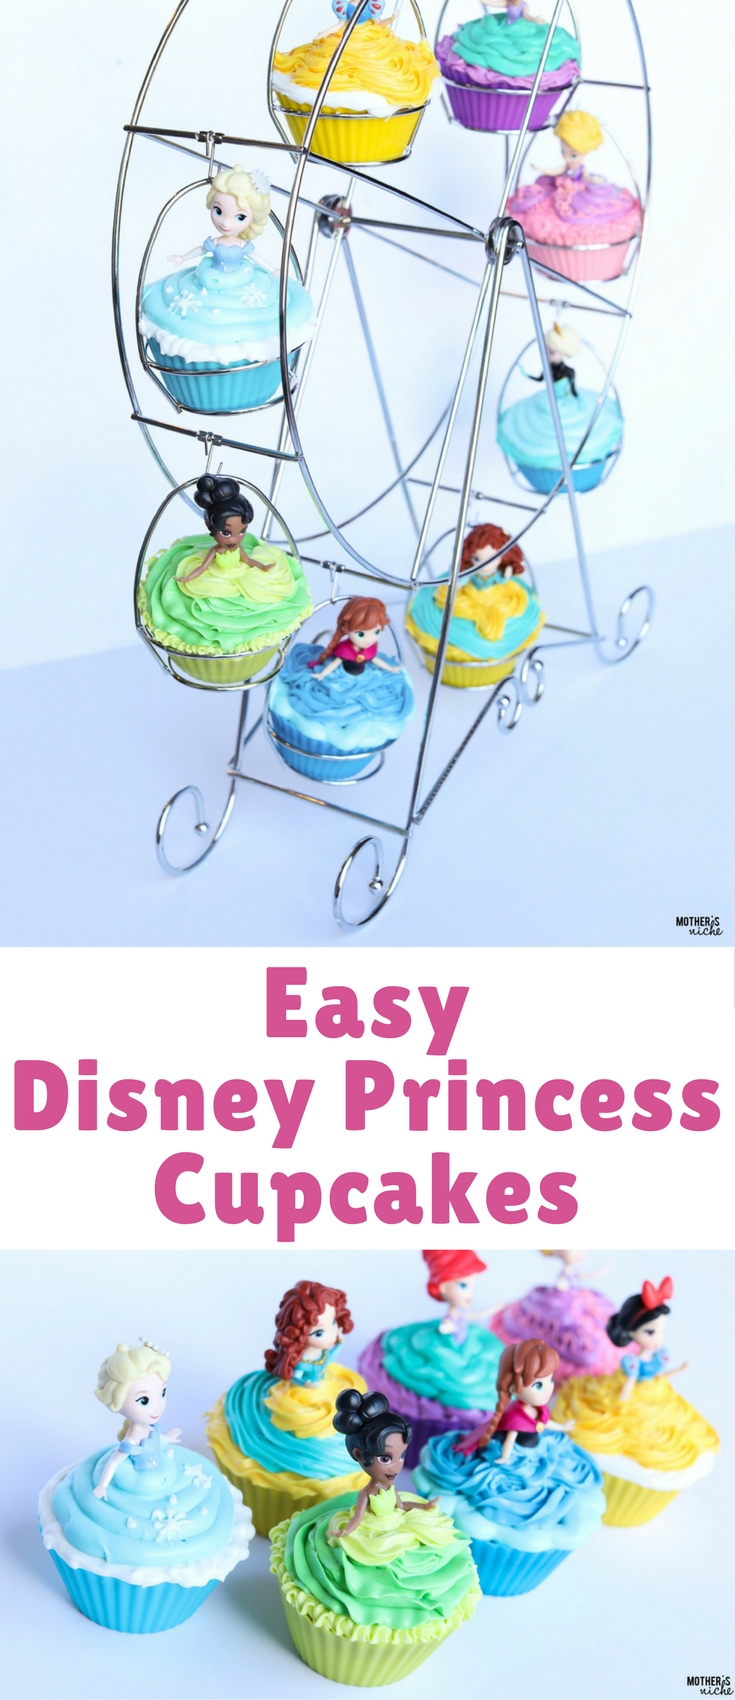 These princess cupcakes were so easy and super fun to make. With a little training, even my girls could make them.